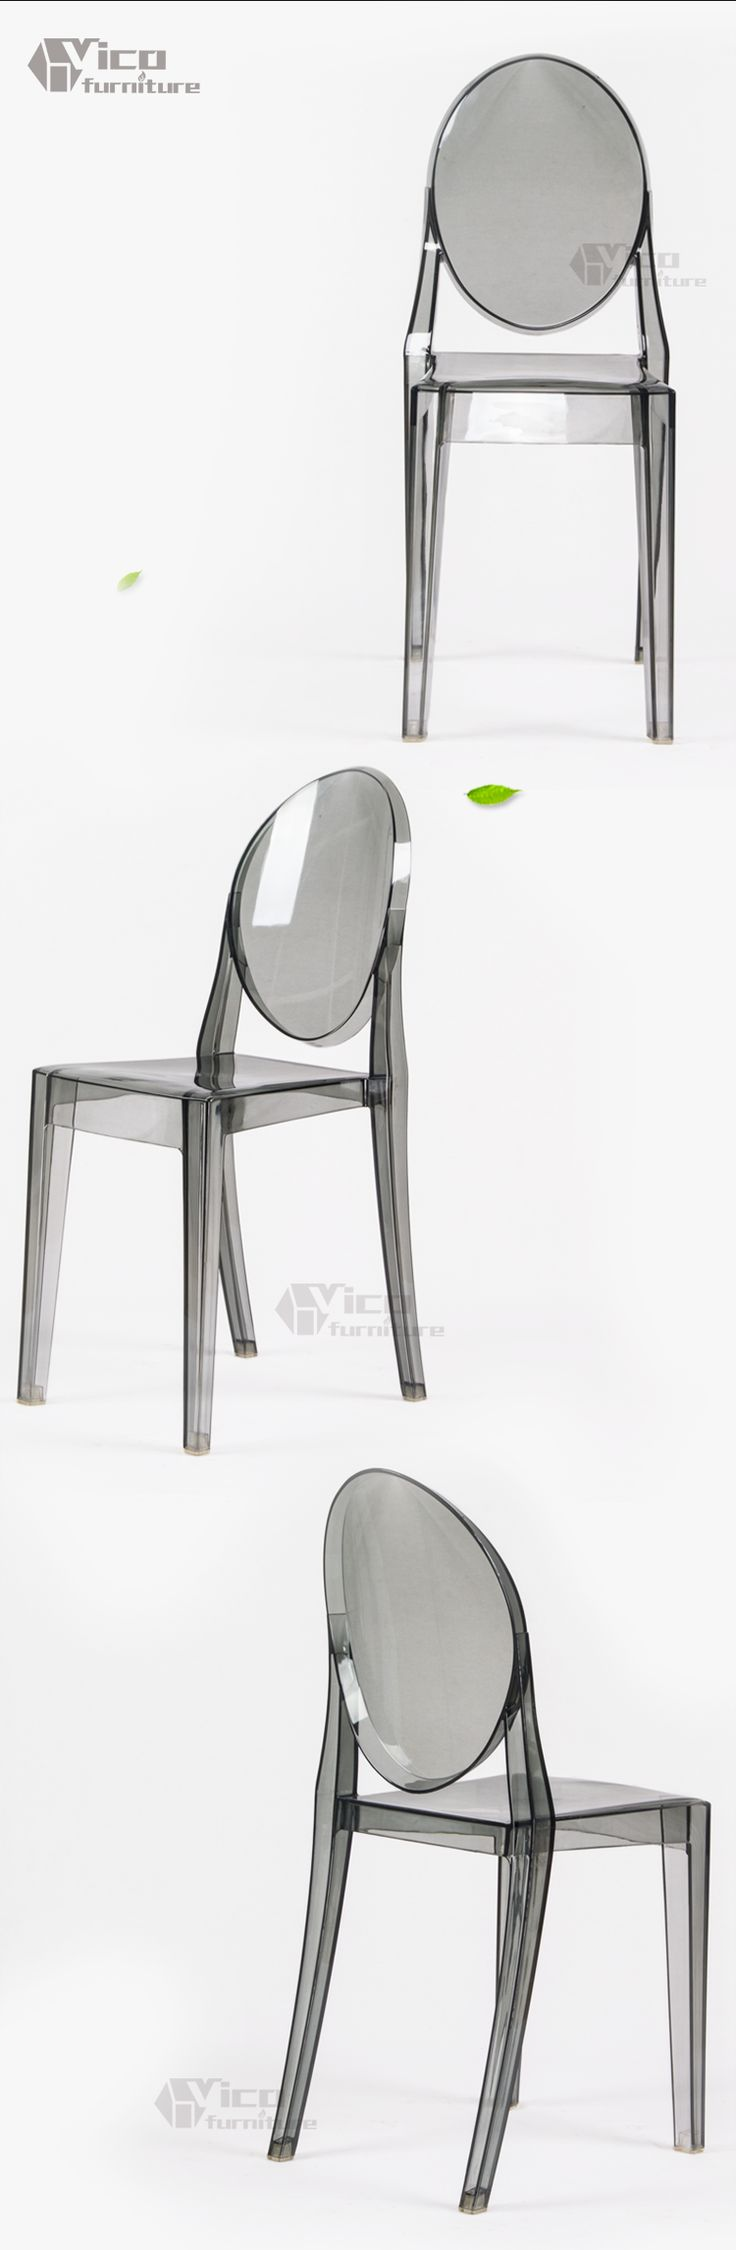 manufacturer cheap high quality outdoor garden crystal clear wedding banquet chair, View banquet chair, VICO FURNITURE Product Details from Taizhou Lanhai Plastic Co., Ltd. on Alibaba.com